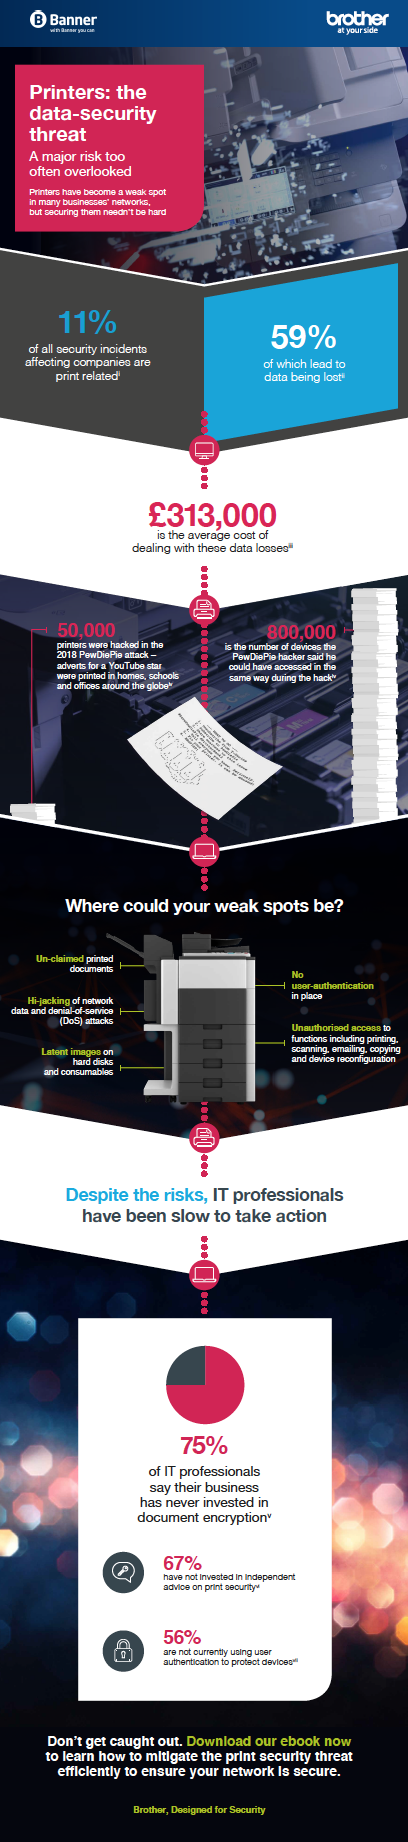 Brother - infographic-printers-the-data-security-threat